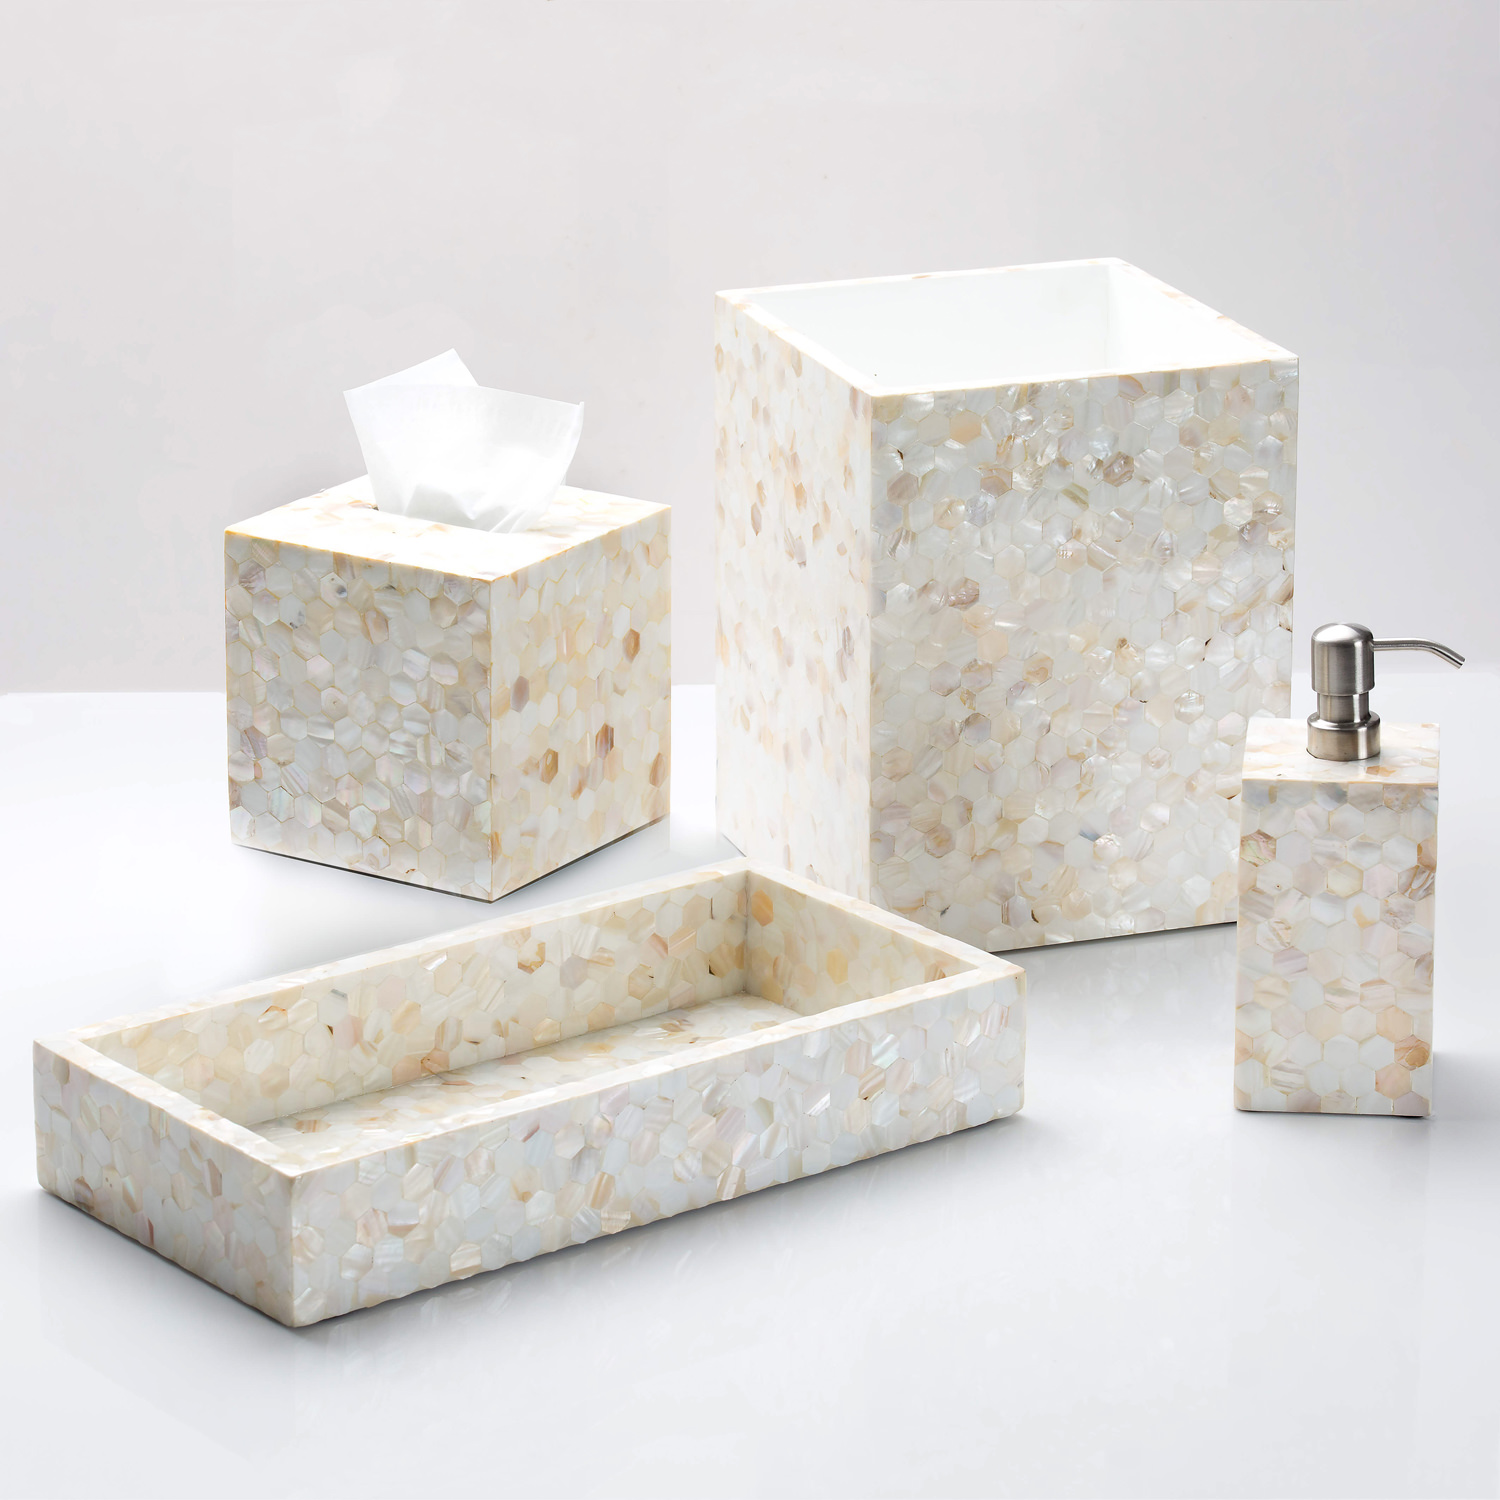 Couture Lamps Boxes 3.jpg